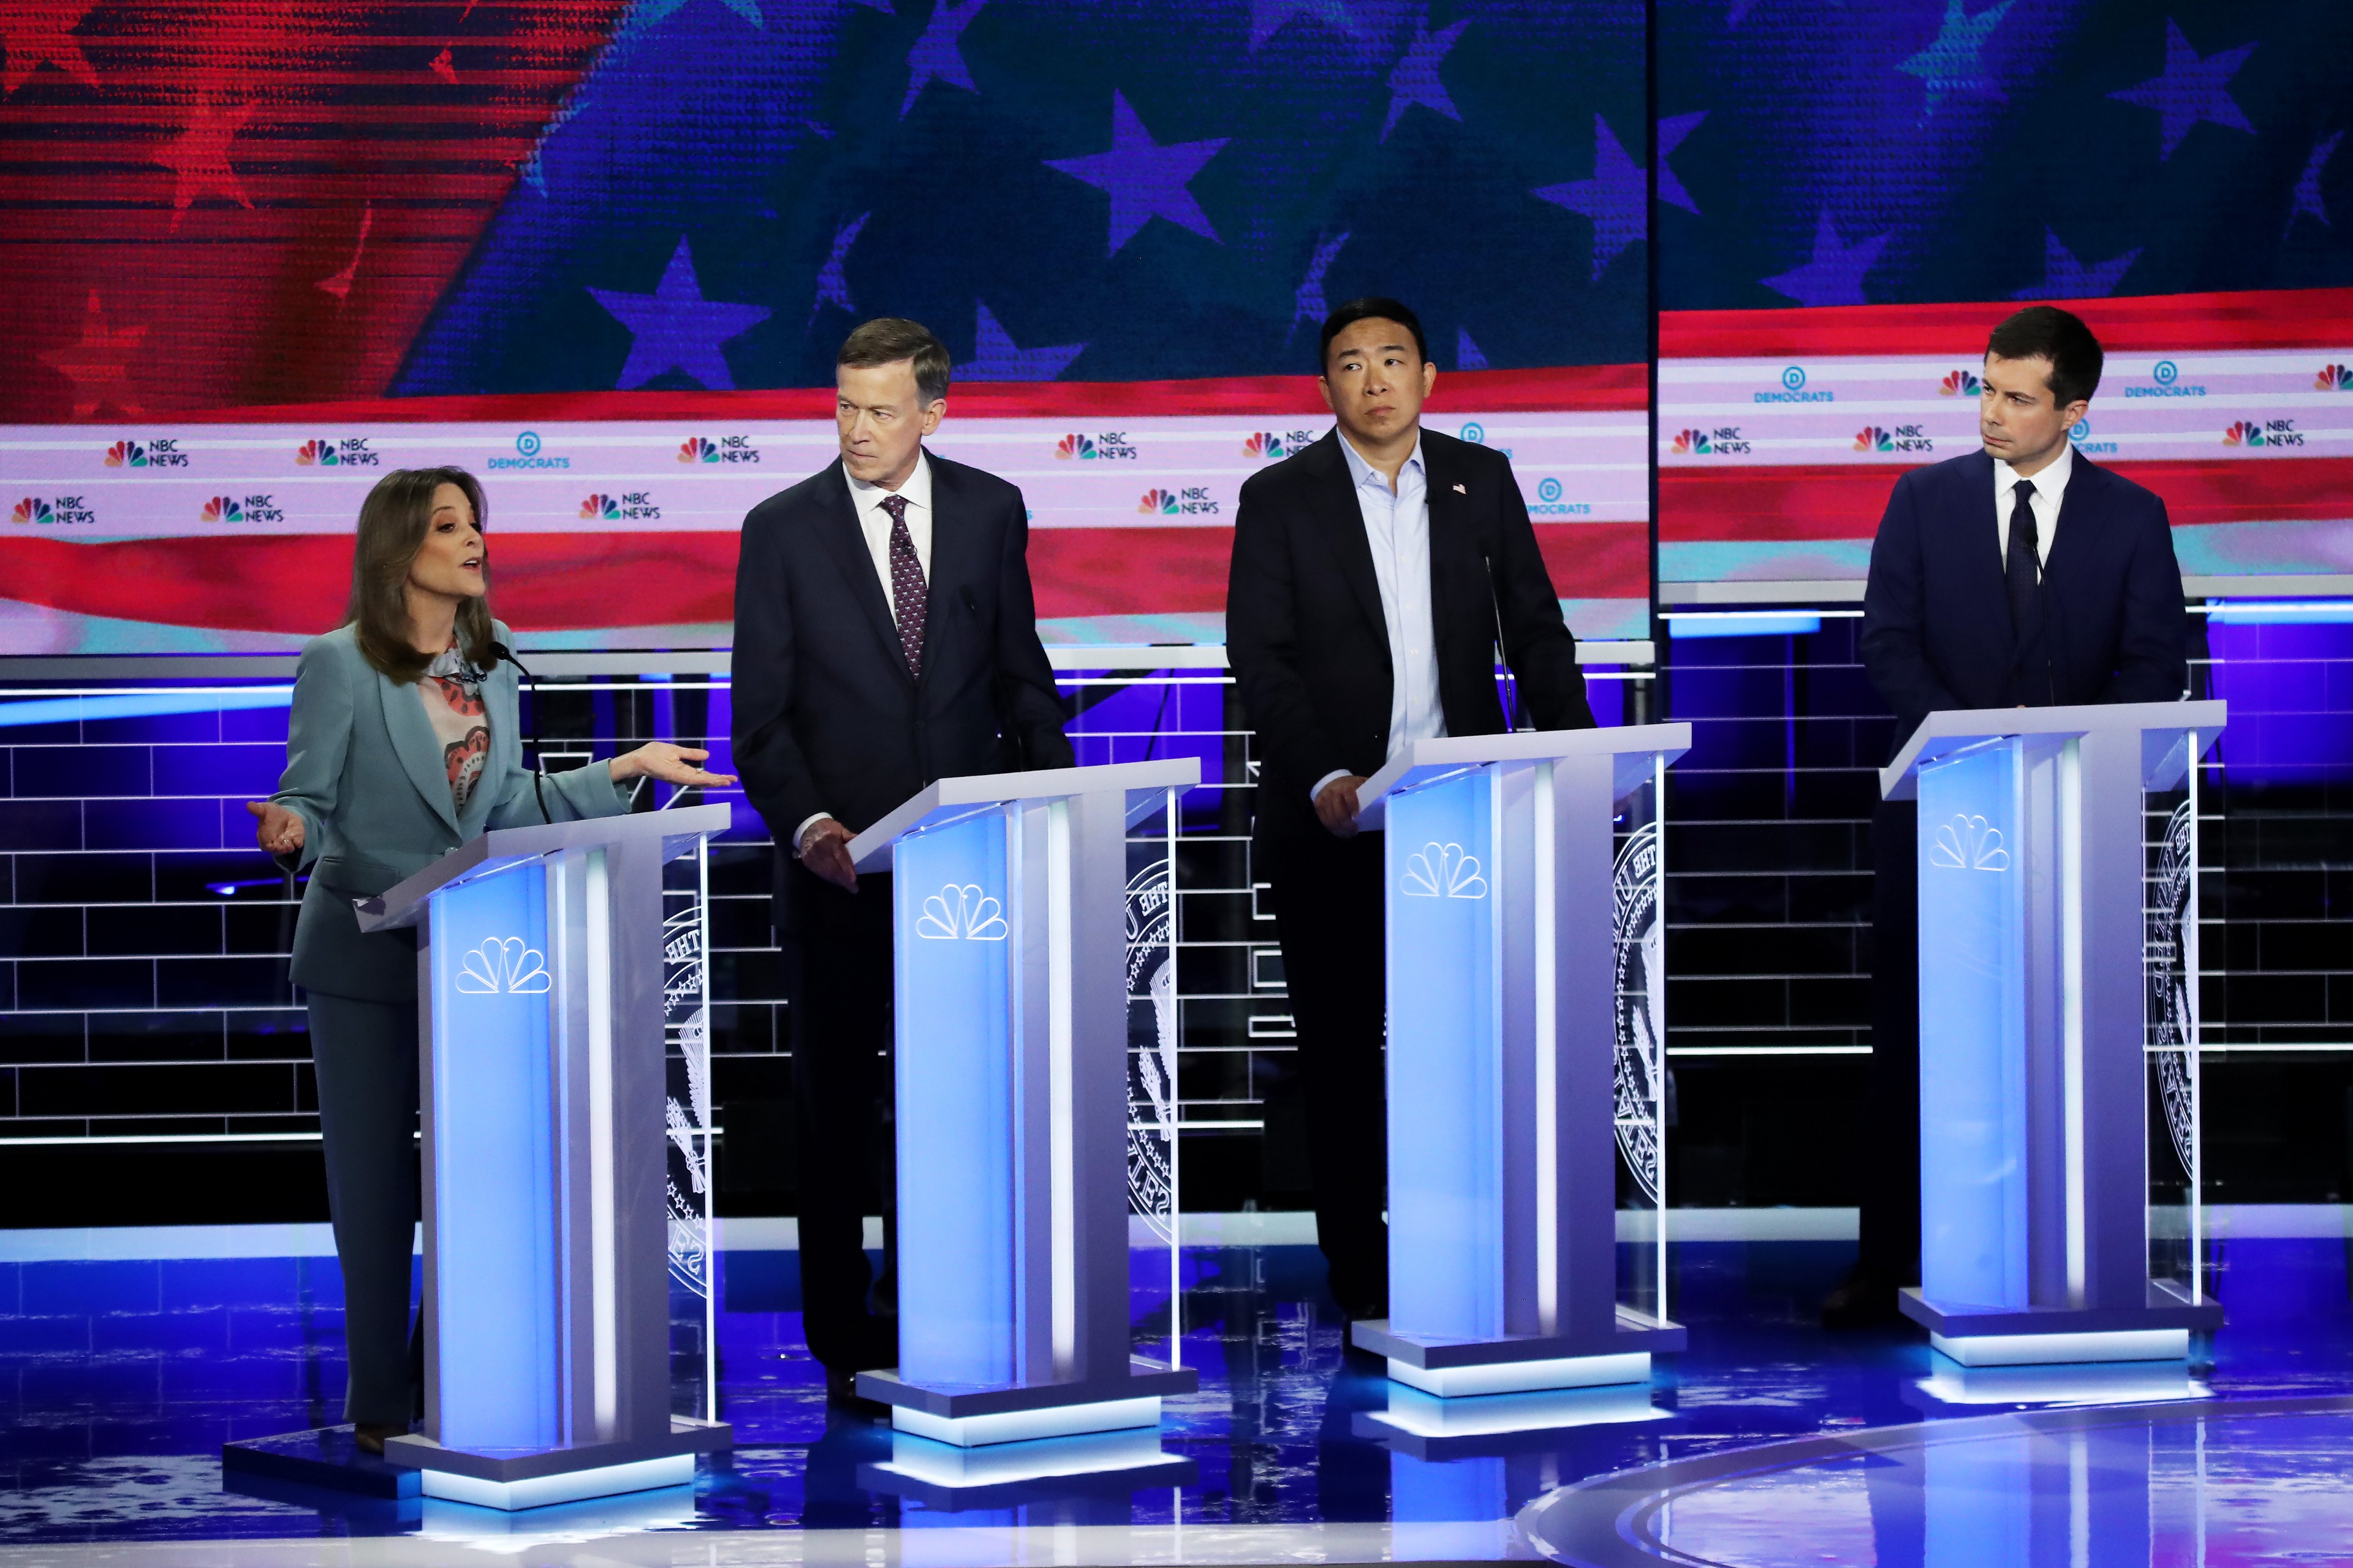 Should Marianne Williamson Be on the Debate Stage?